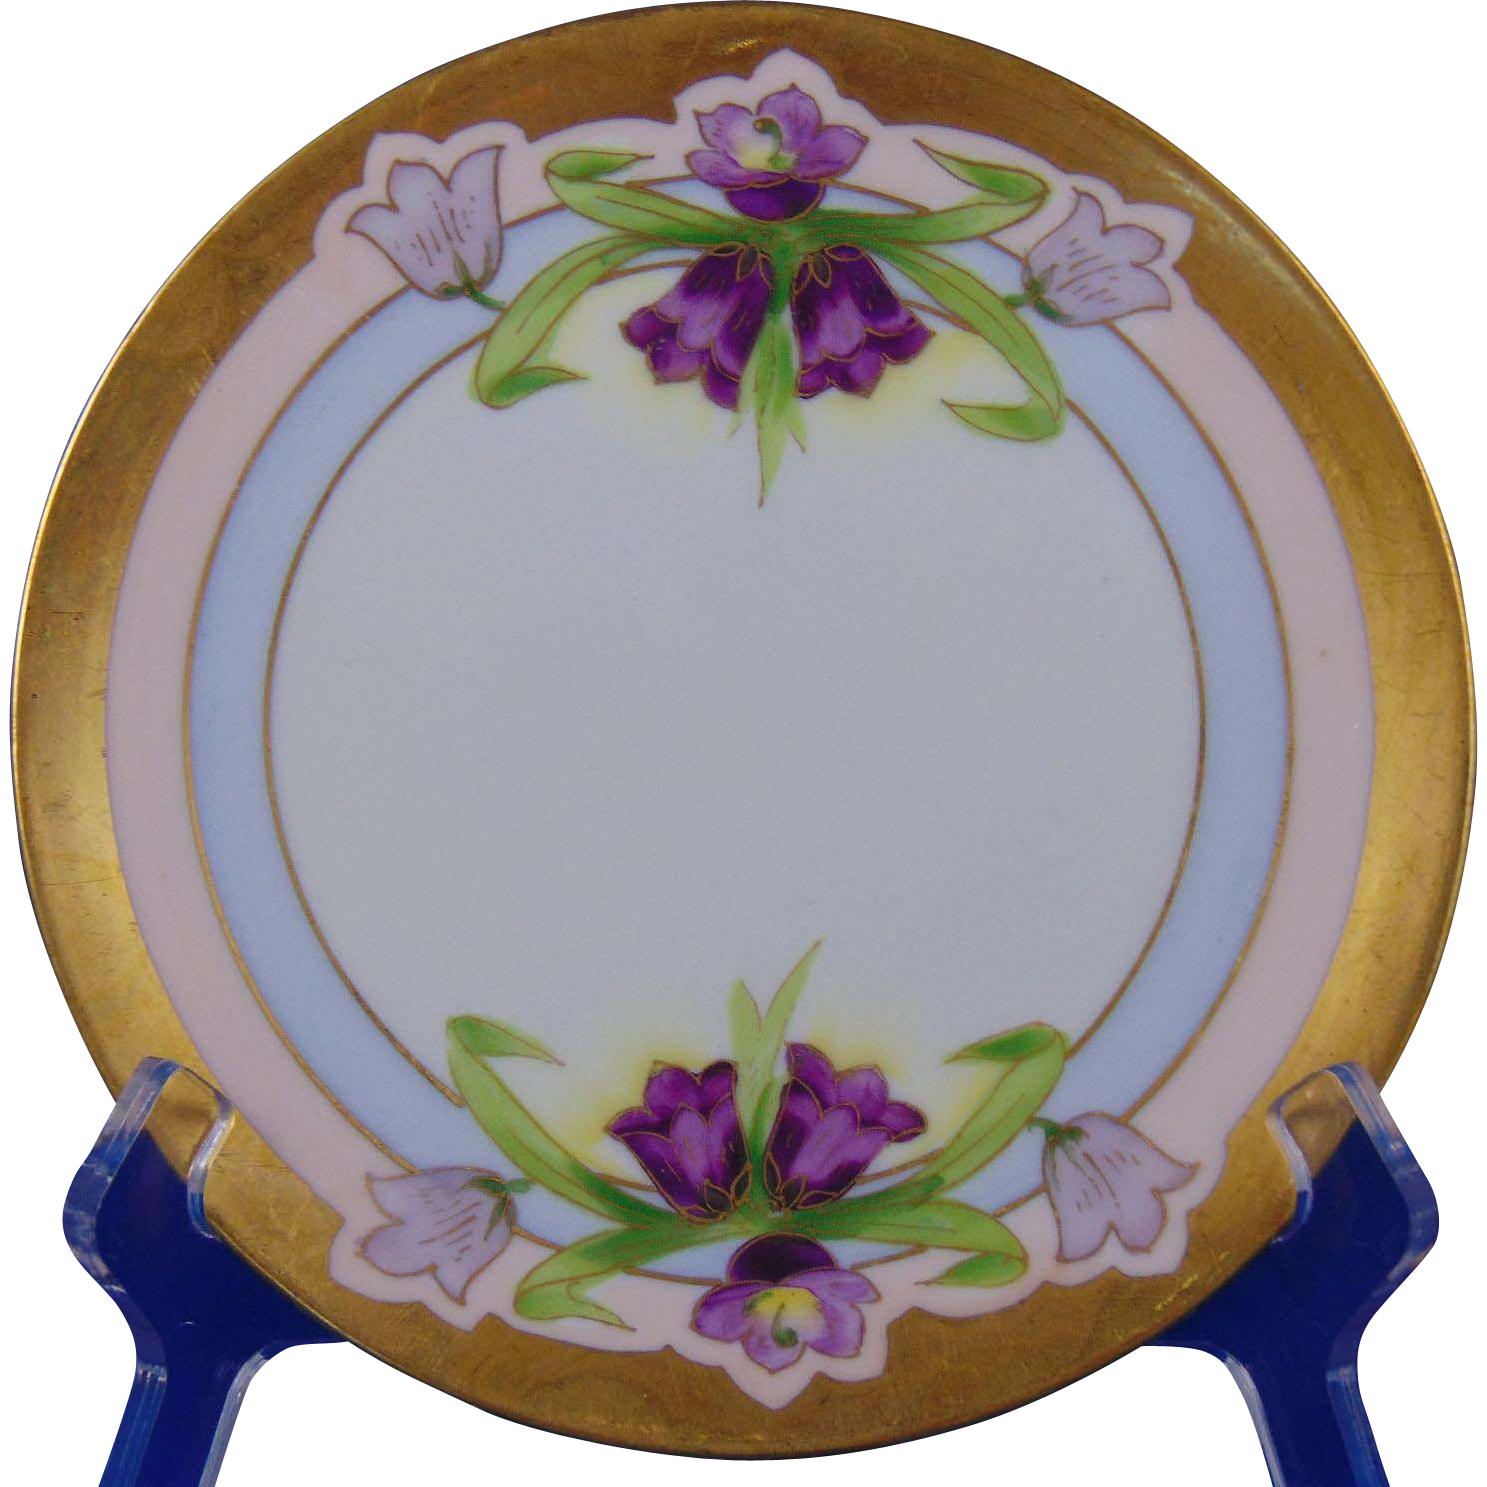 Jaeger & Co. (J&C) Bavaria Stouffer Studio Purple Floral Plate (c.1906-1914)